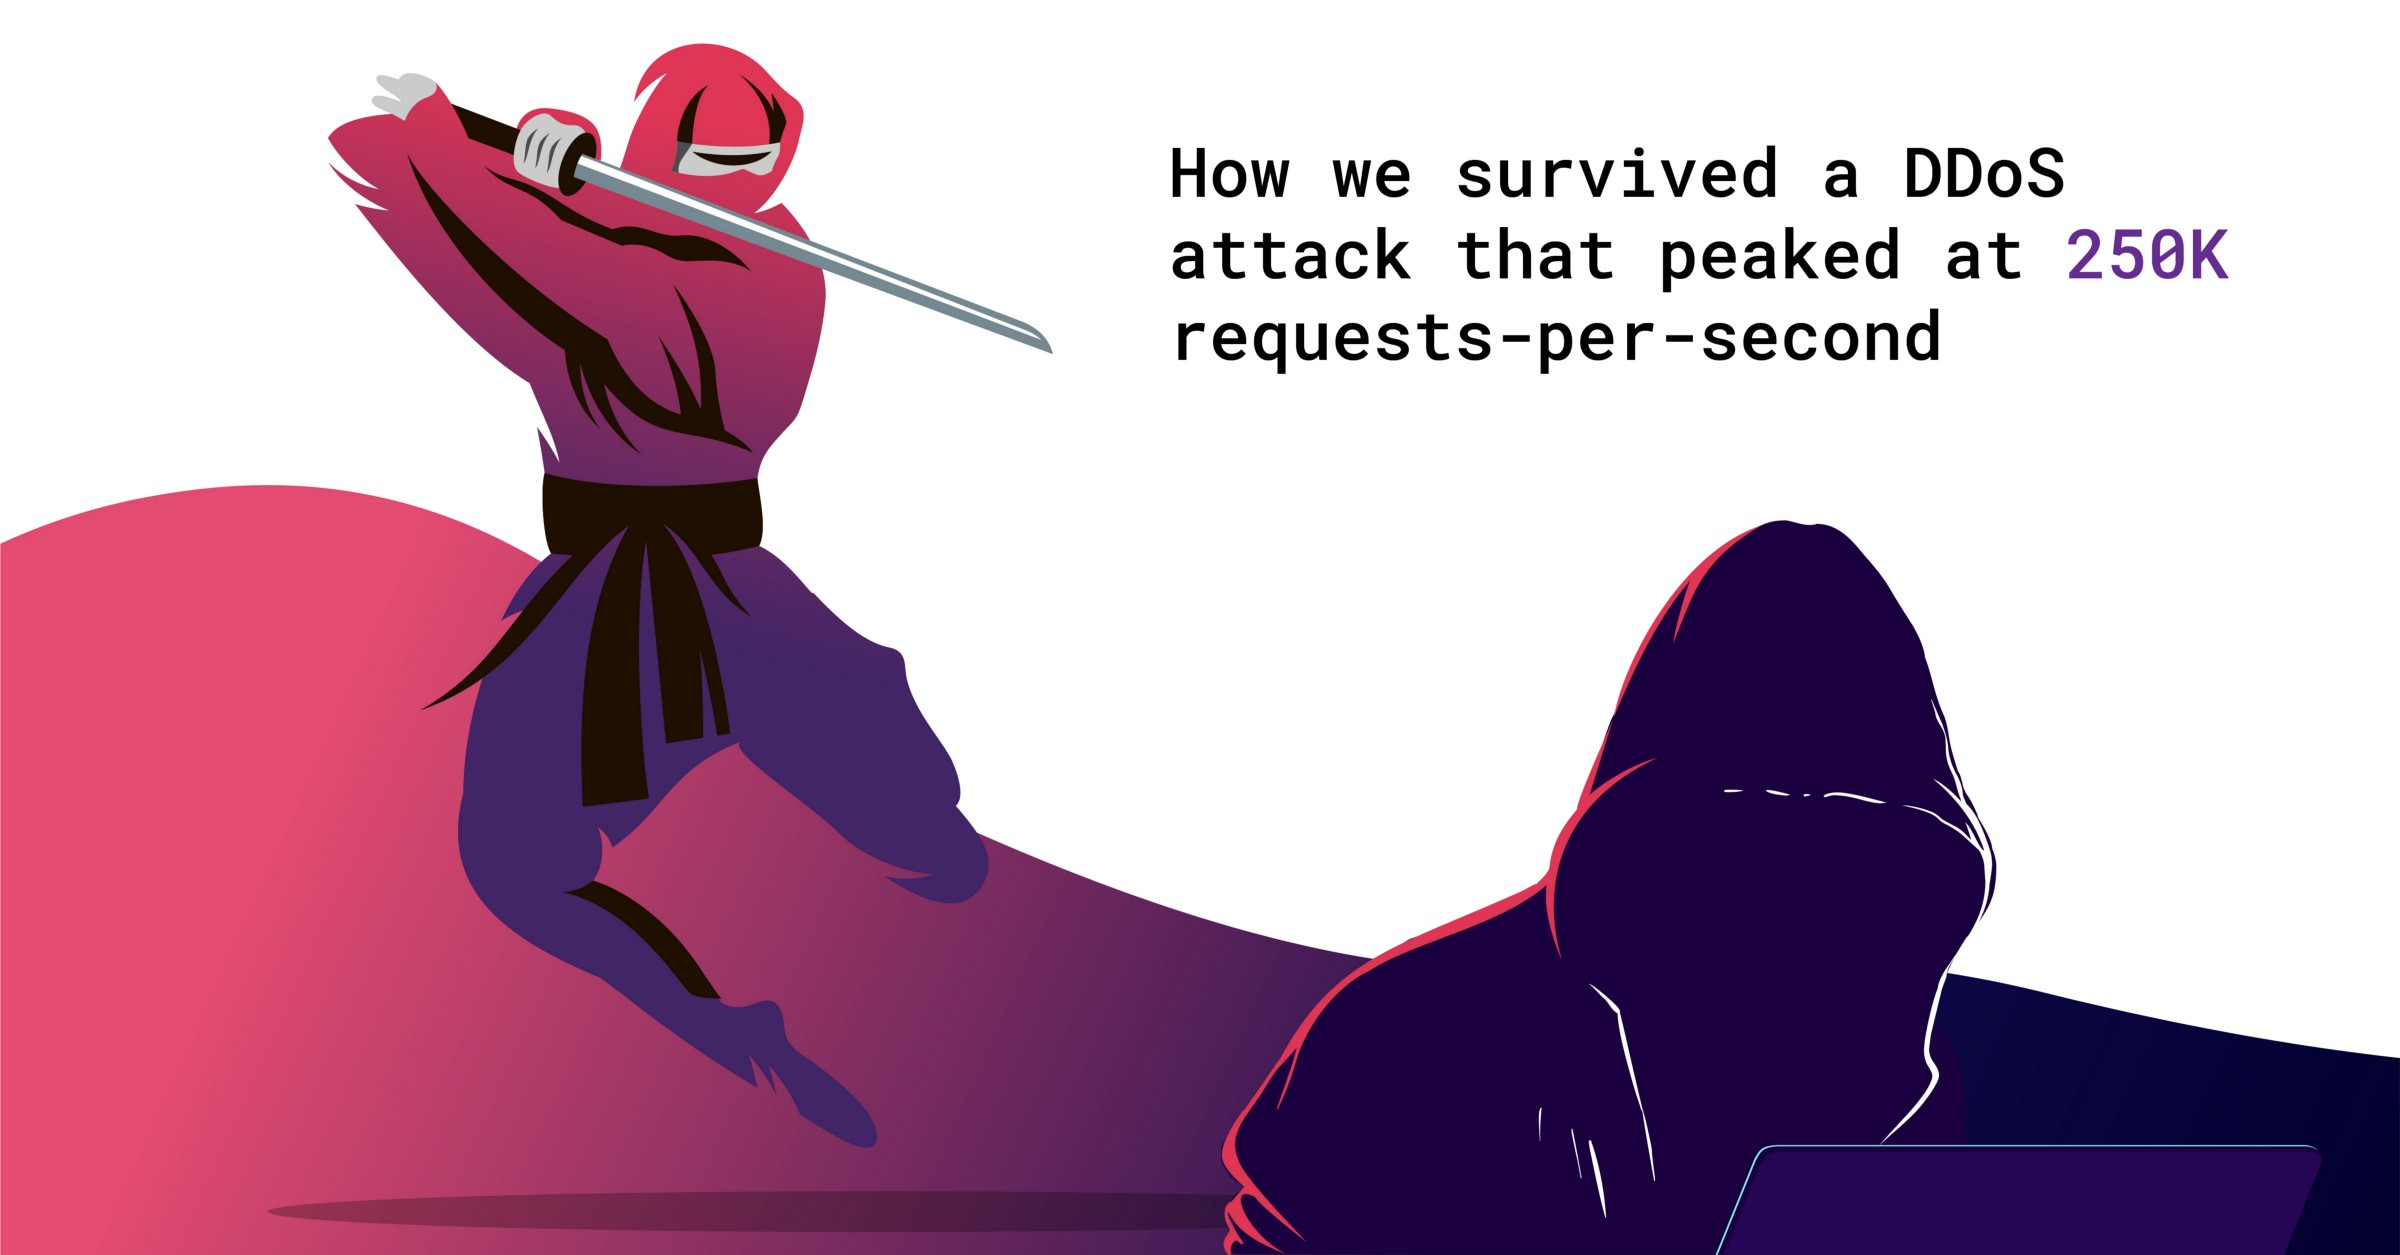 We survived a DDoS attack that peaked at 250k requests-per-second